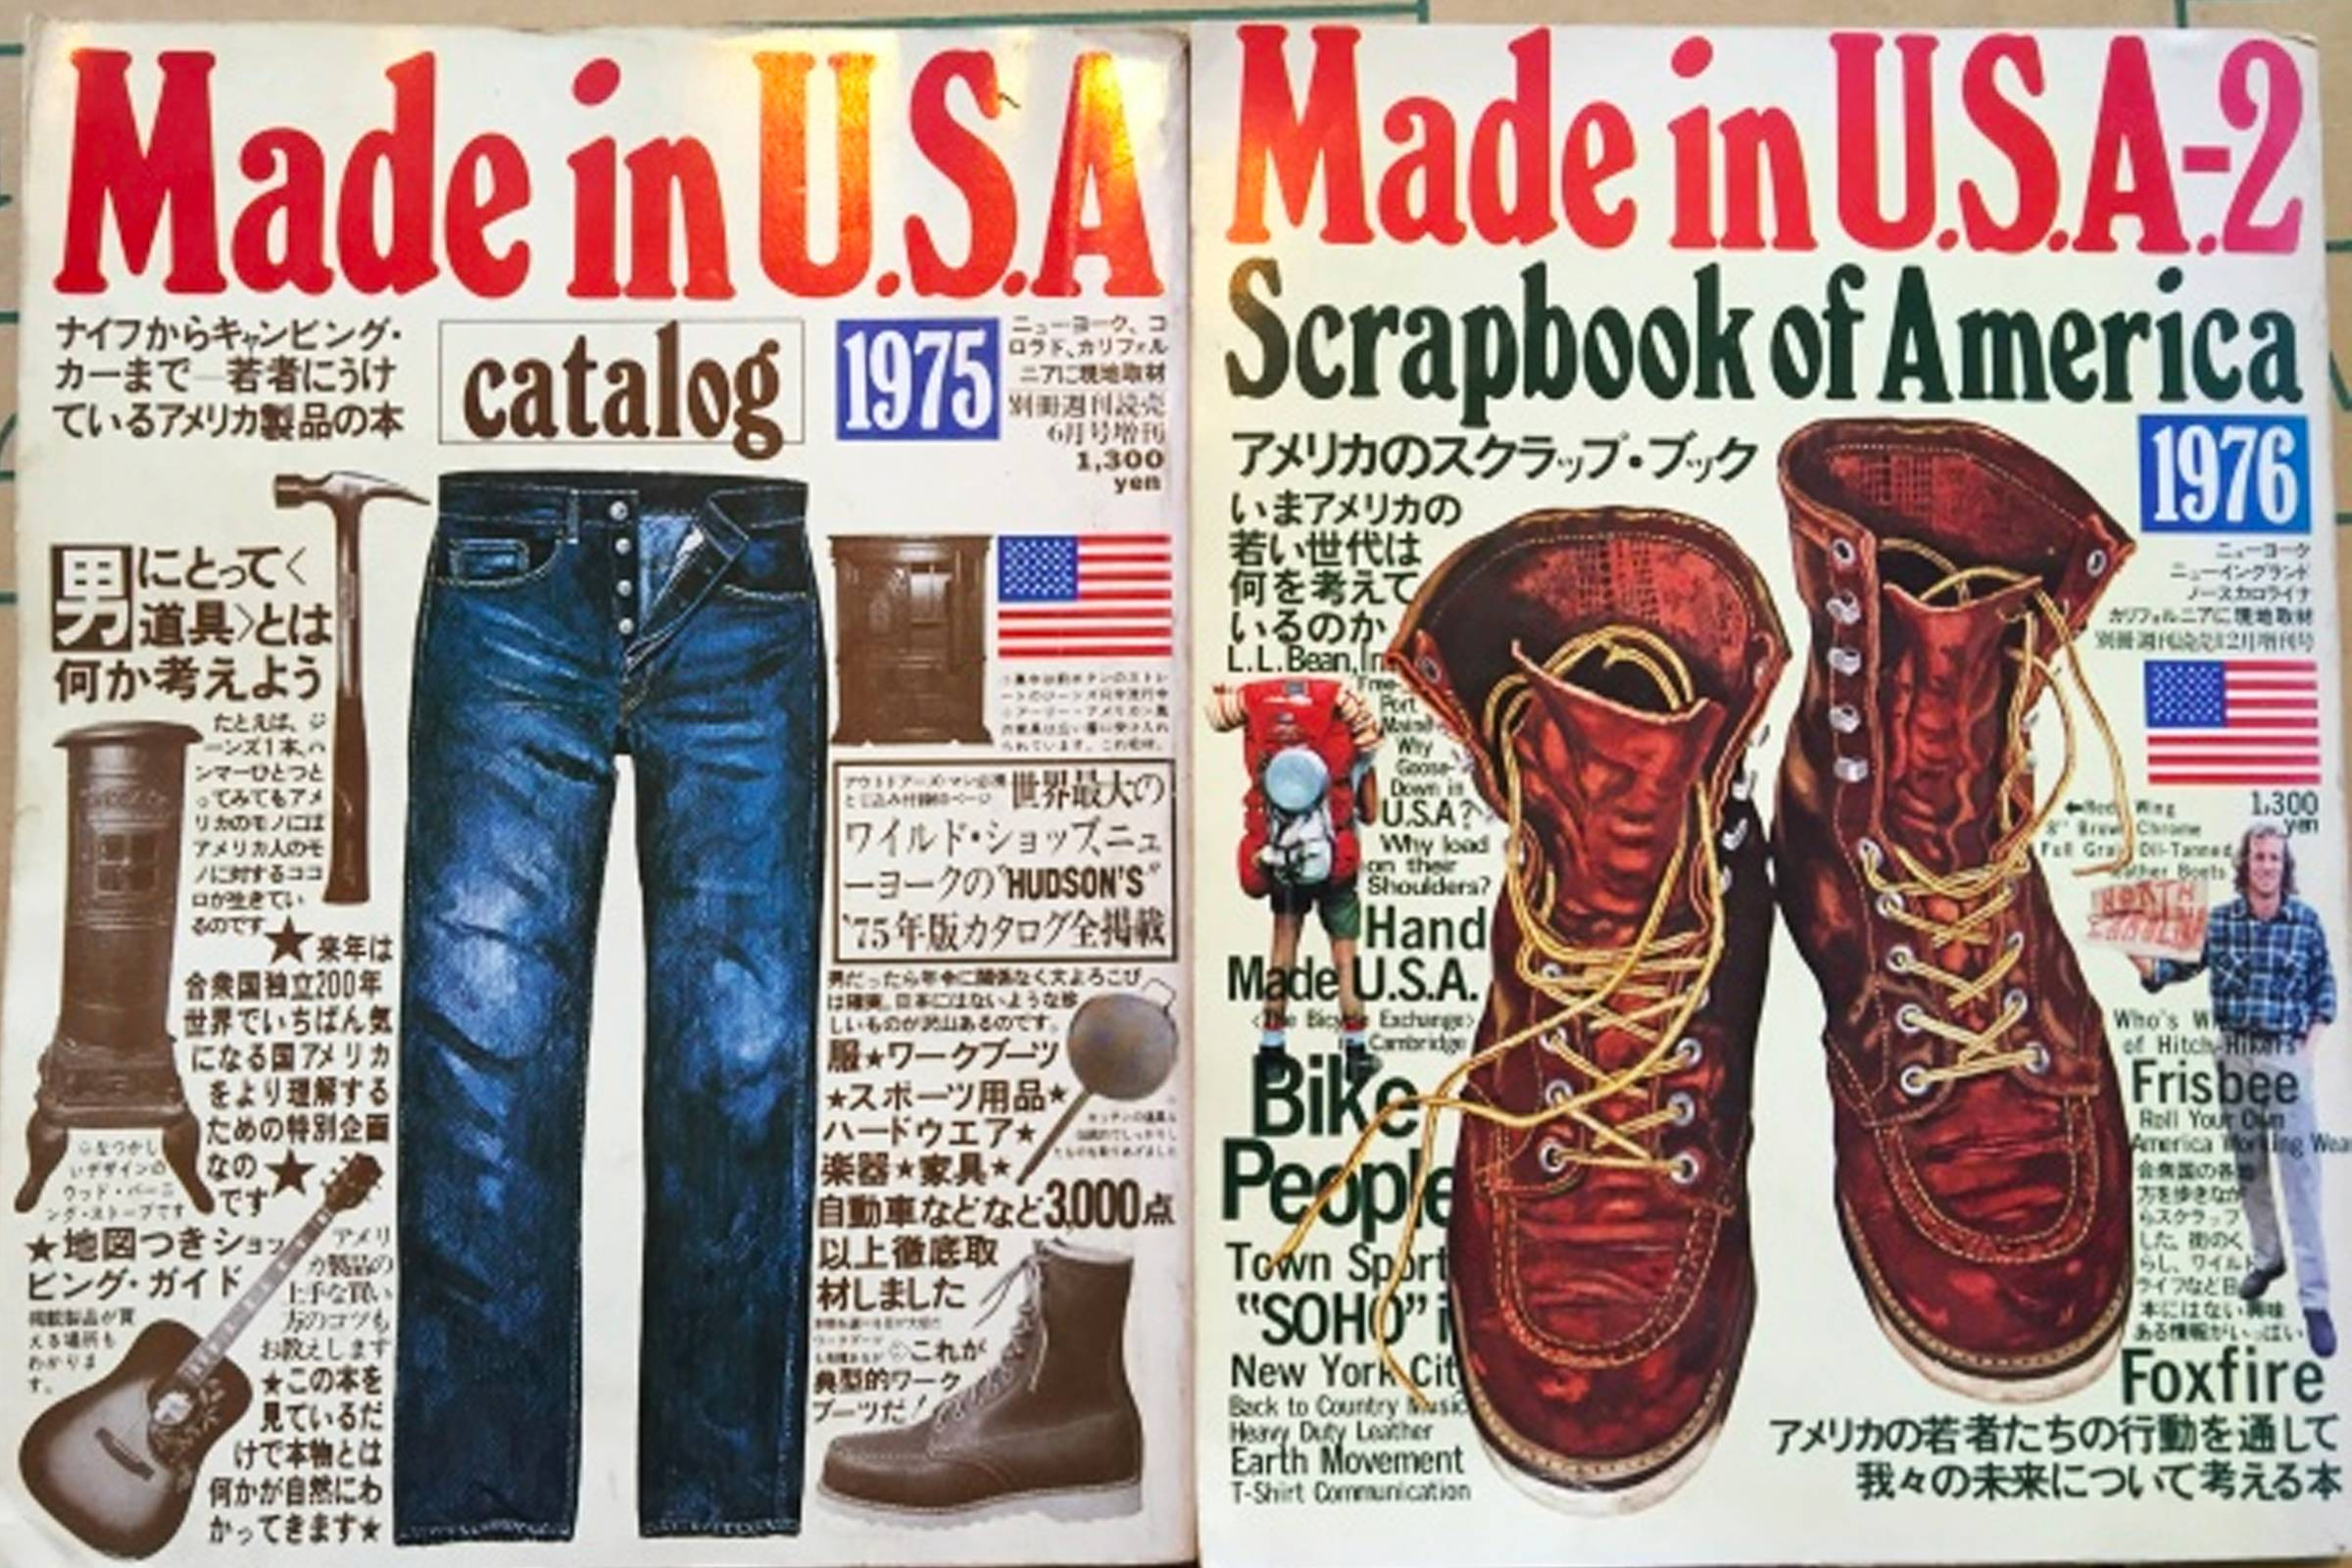 """Made in U.S.A."" Catalogs from 1975 and 1976"